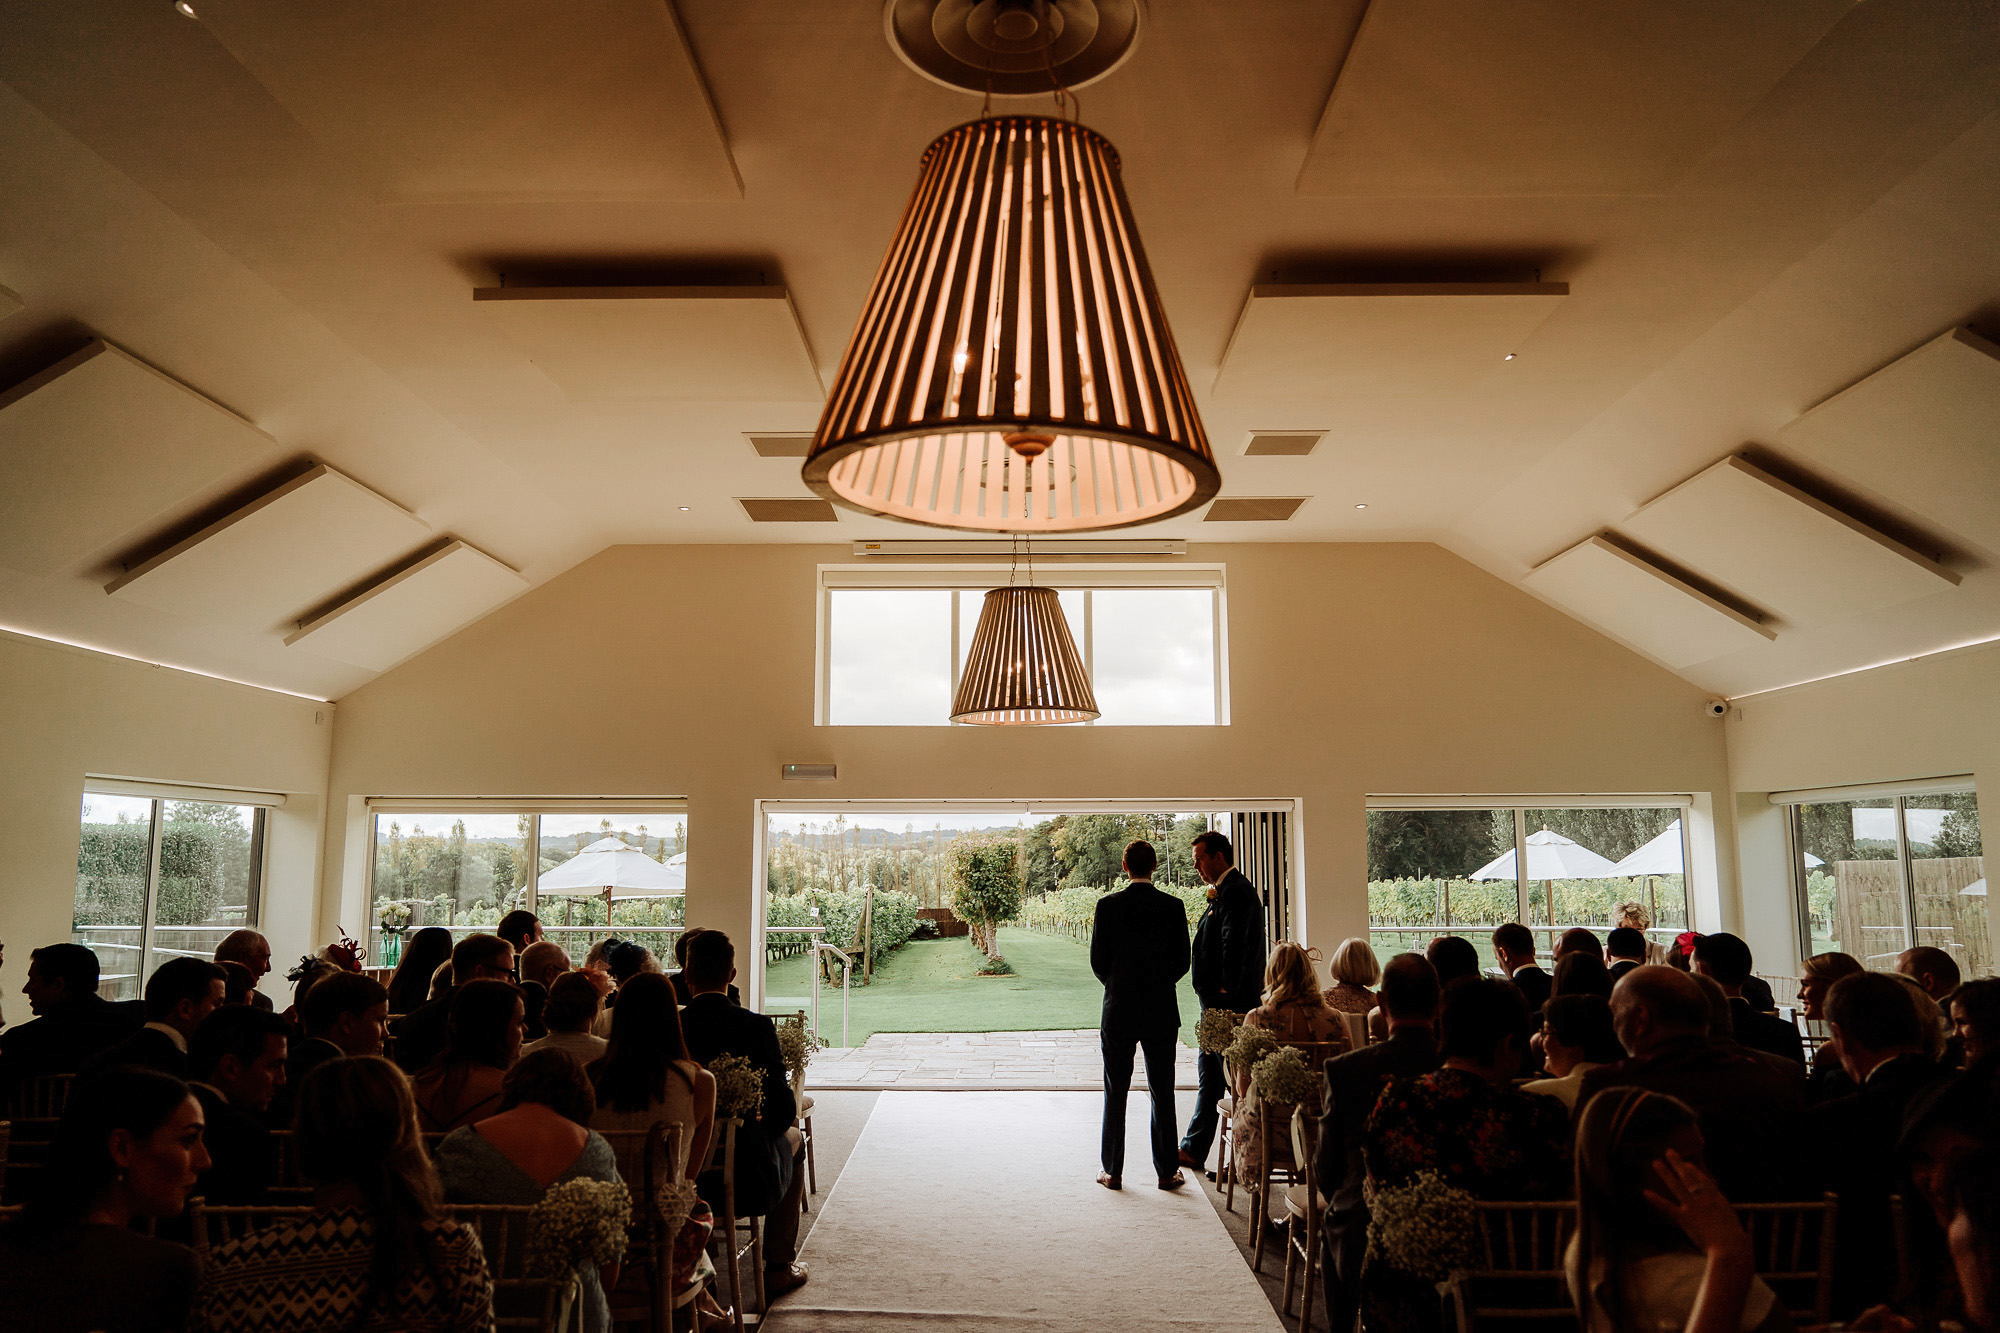 the ceremony room inside Llanerch vineyard